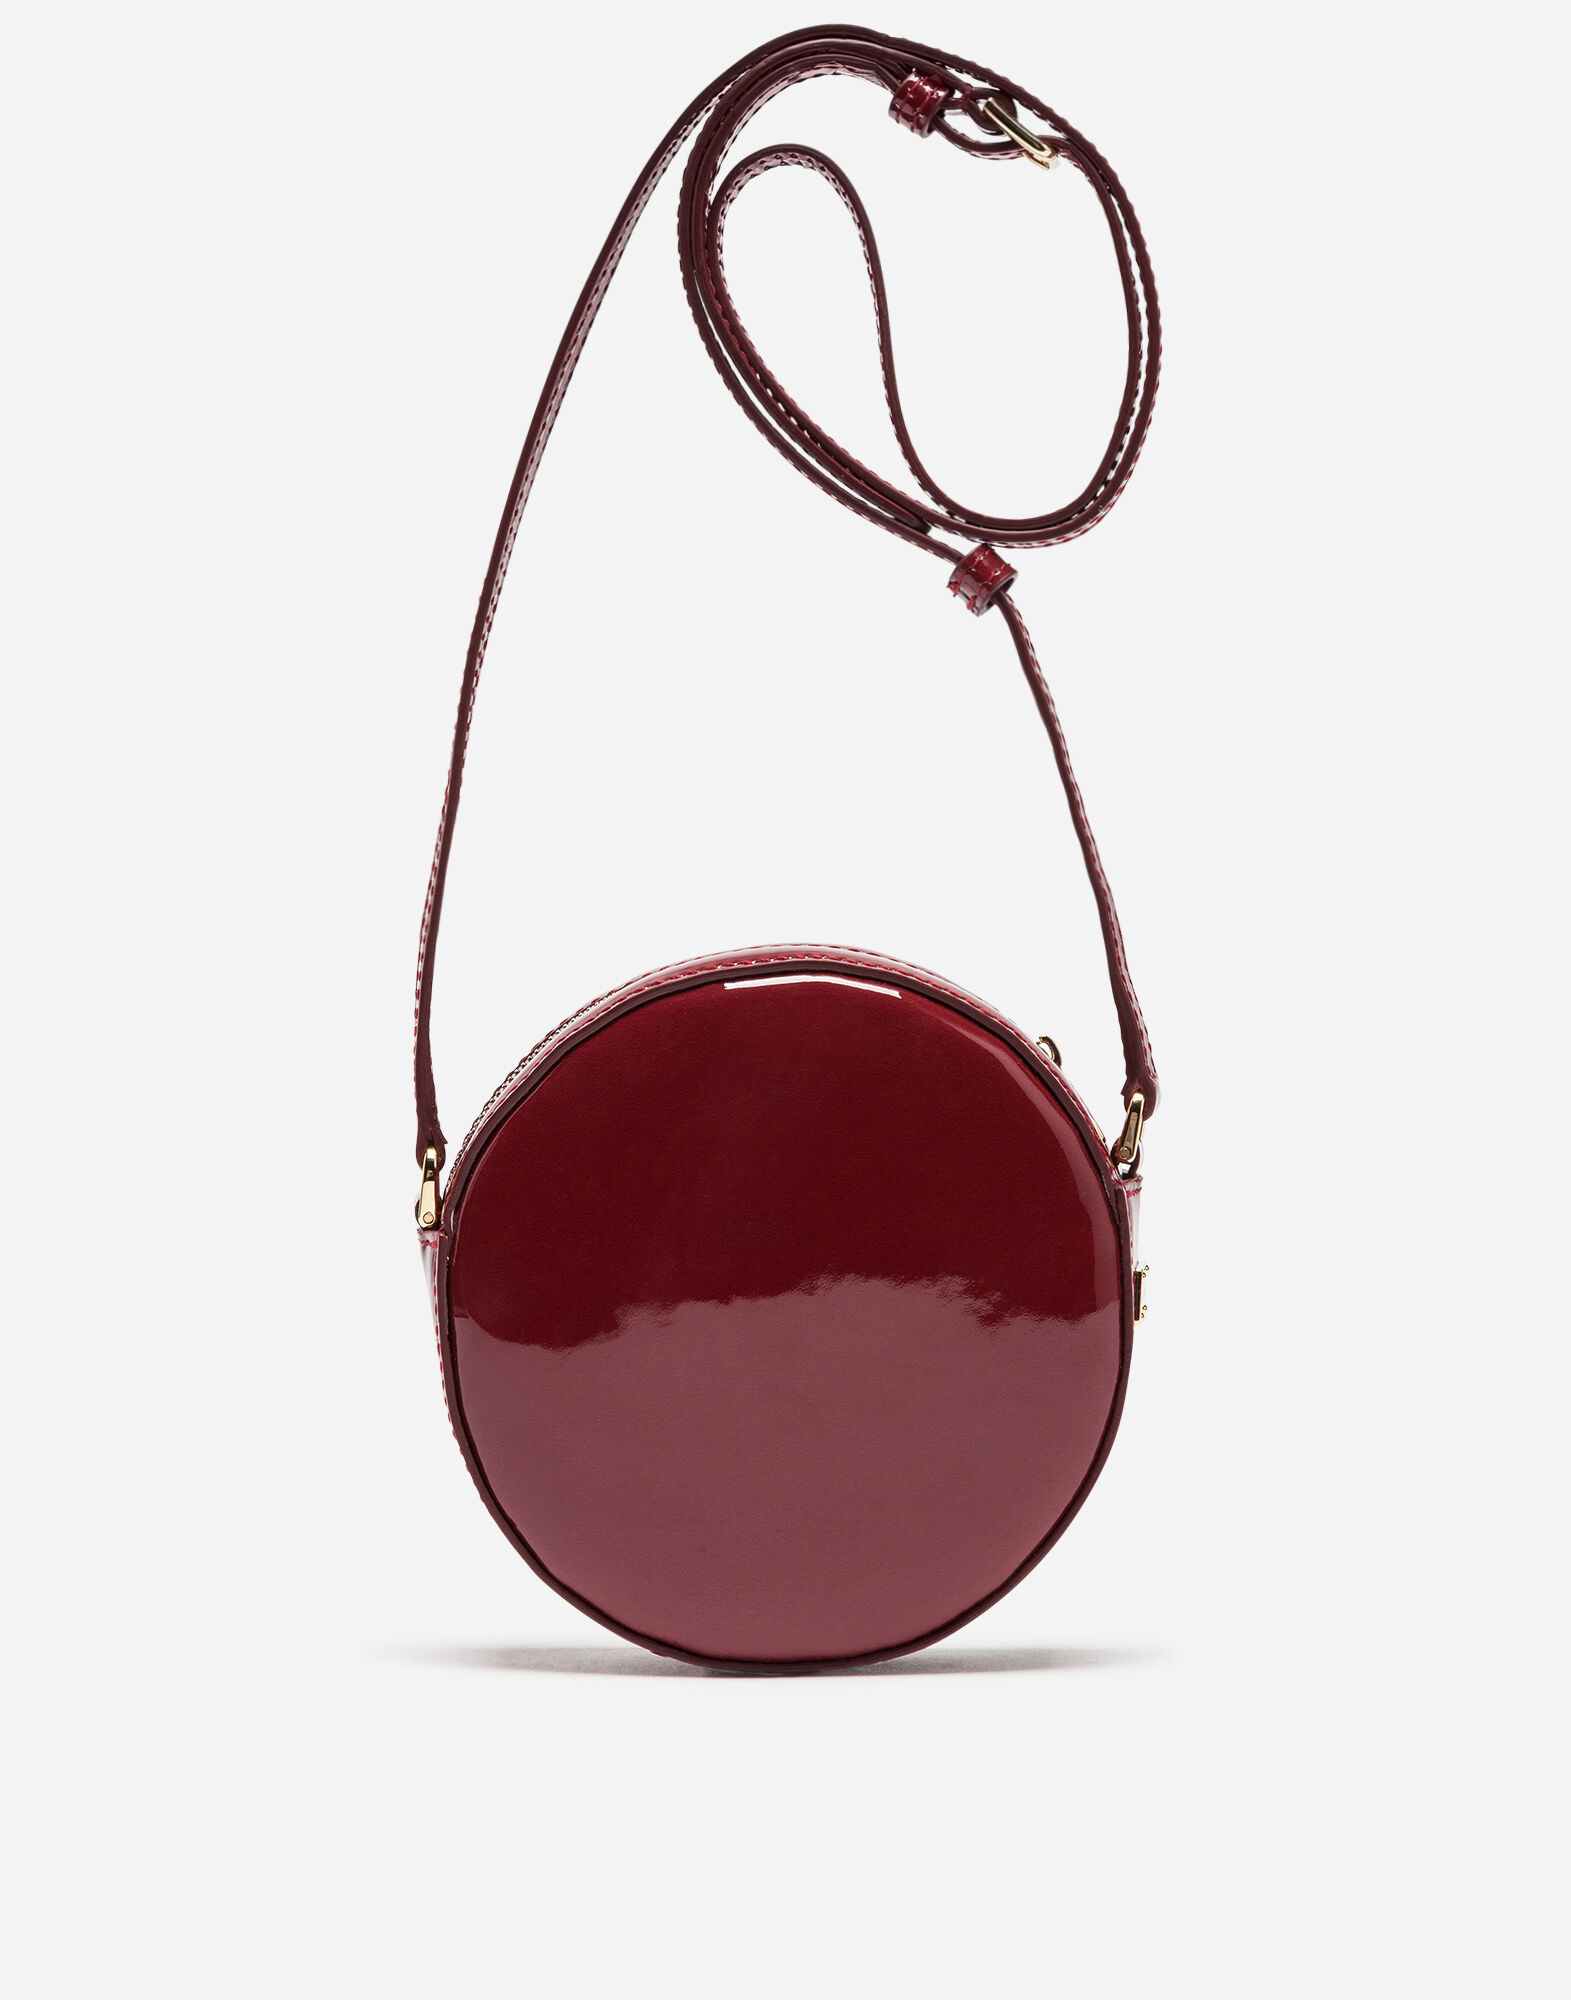 PRINTED PATENT LEATHER SHOULDER BAG